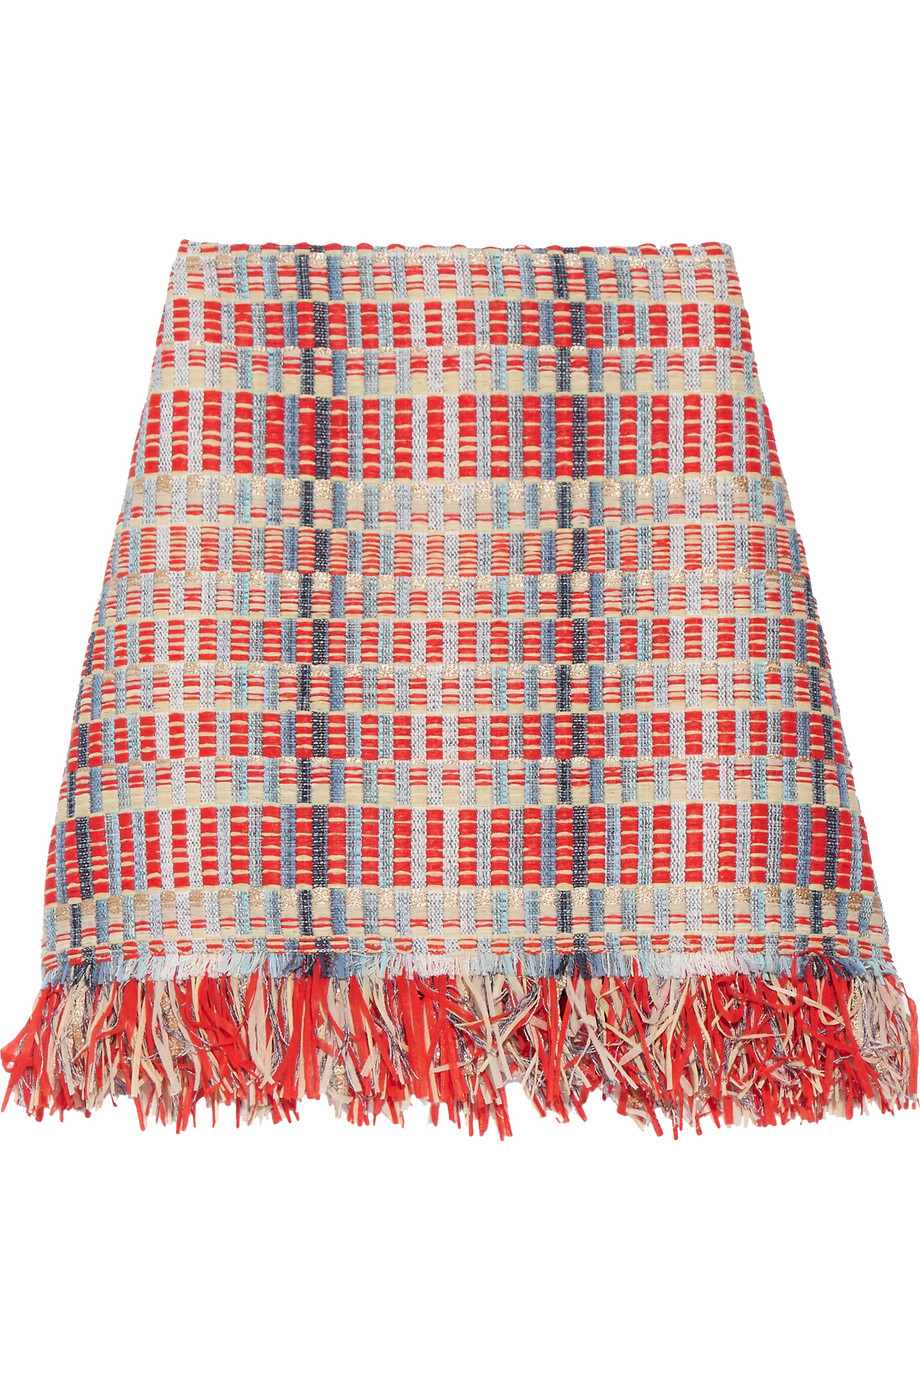 Tory Burch Tara Fringed Metallic Tweed Skirt, Red/Sky Blue, Women's, Size: 0